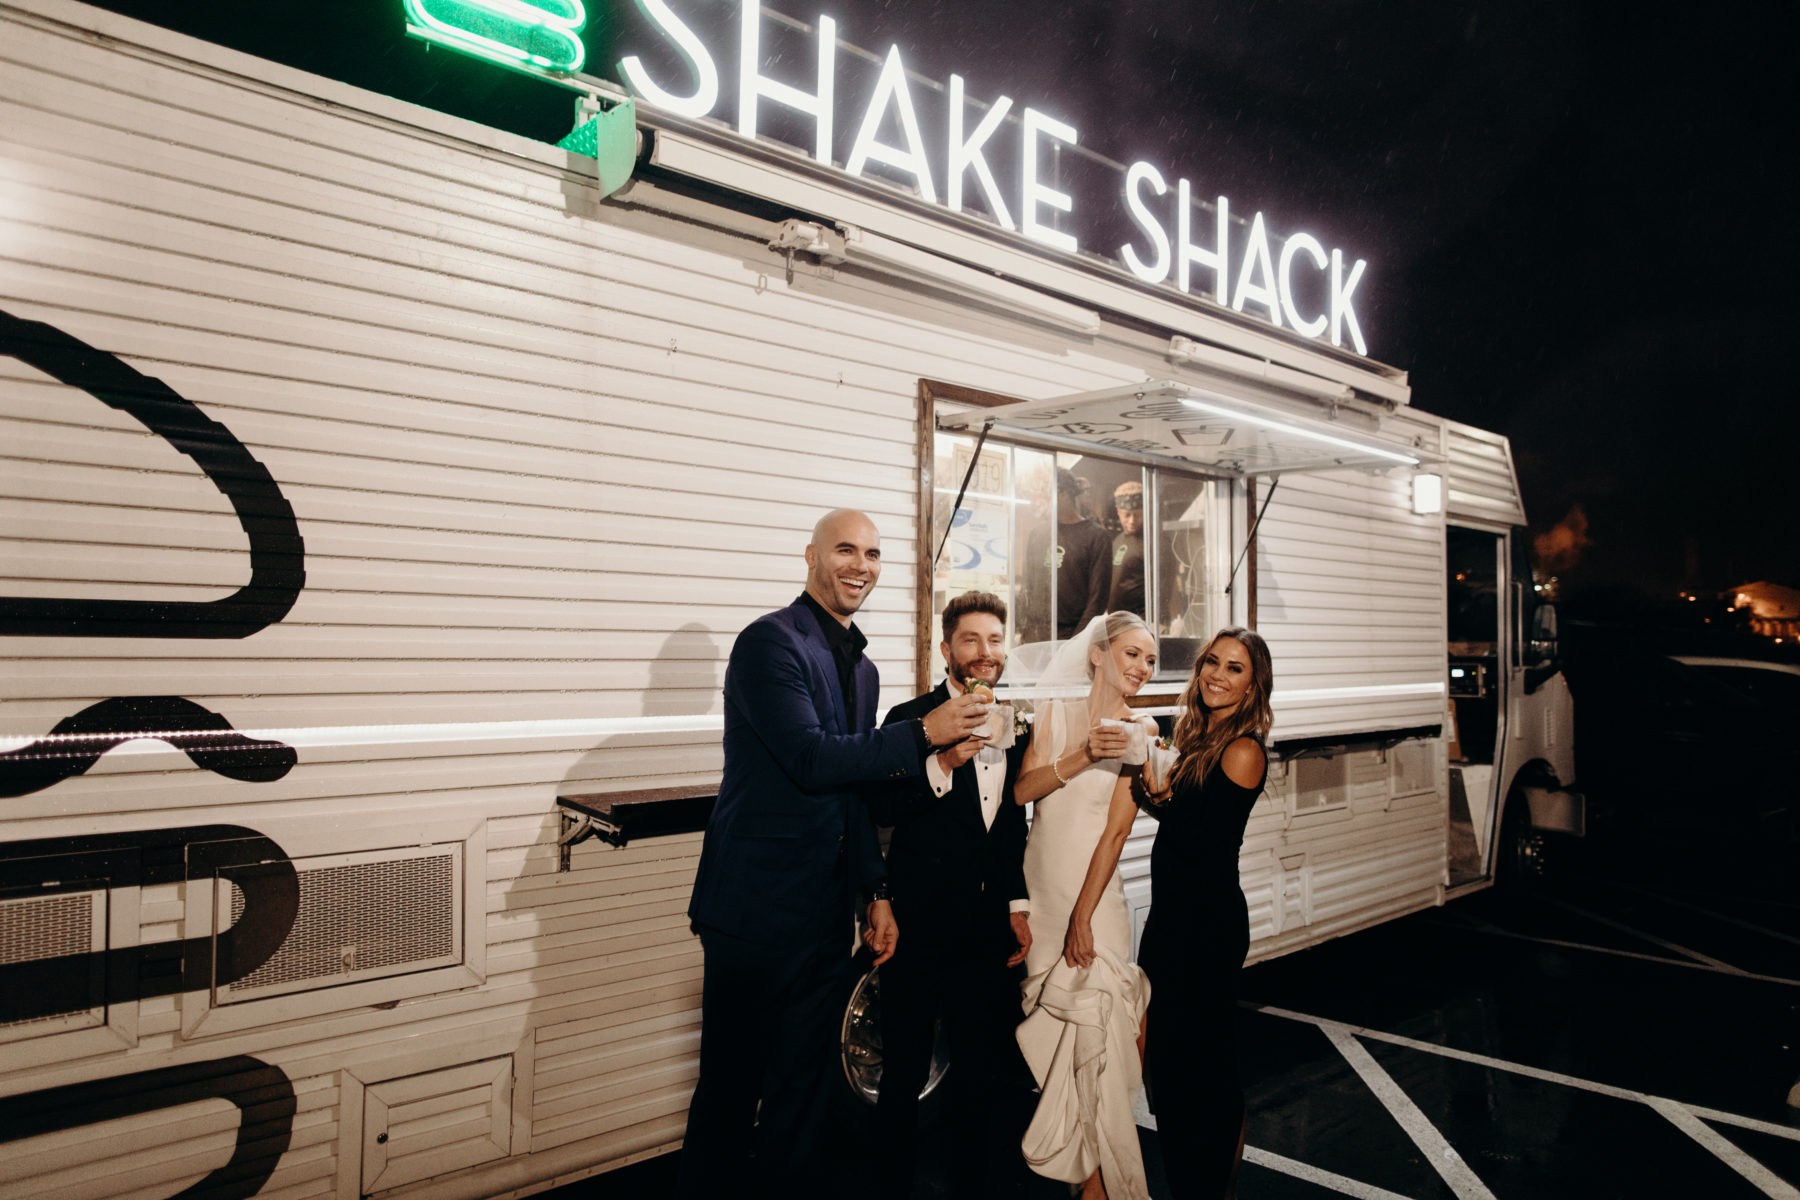 Shake Shack Wedding Food: Lauren & Chris Lane's 14 TENN wedding featured on Nashville Bride Guide